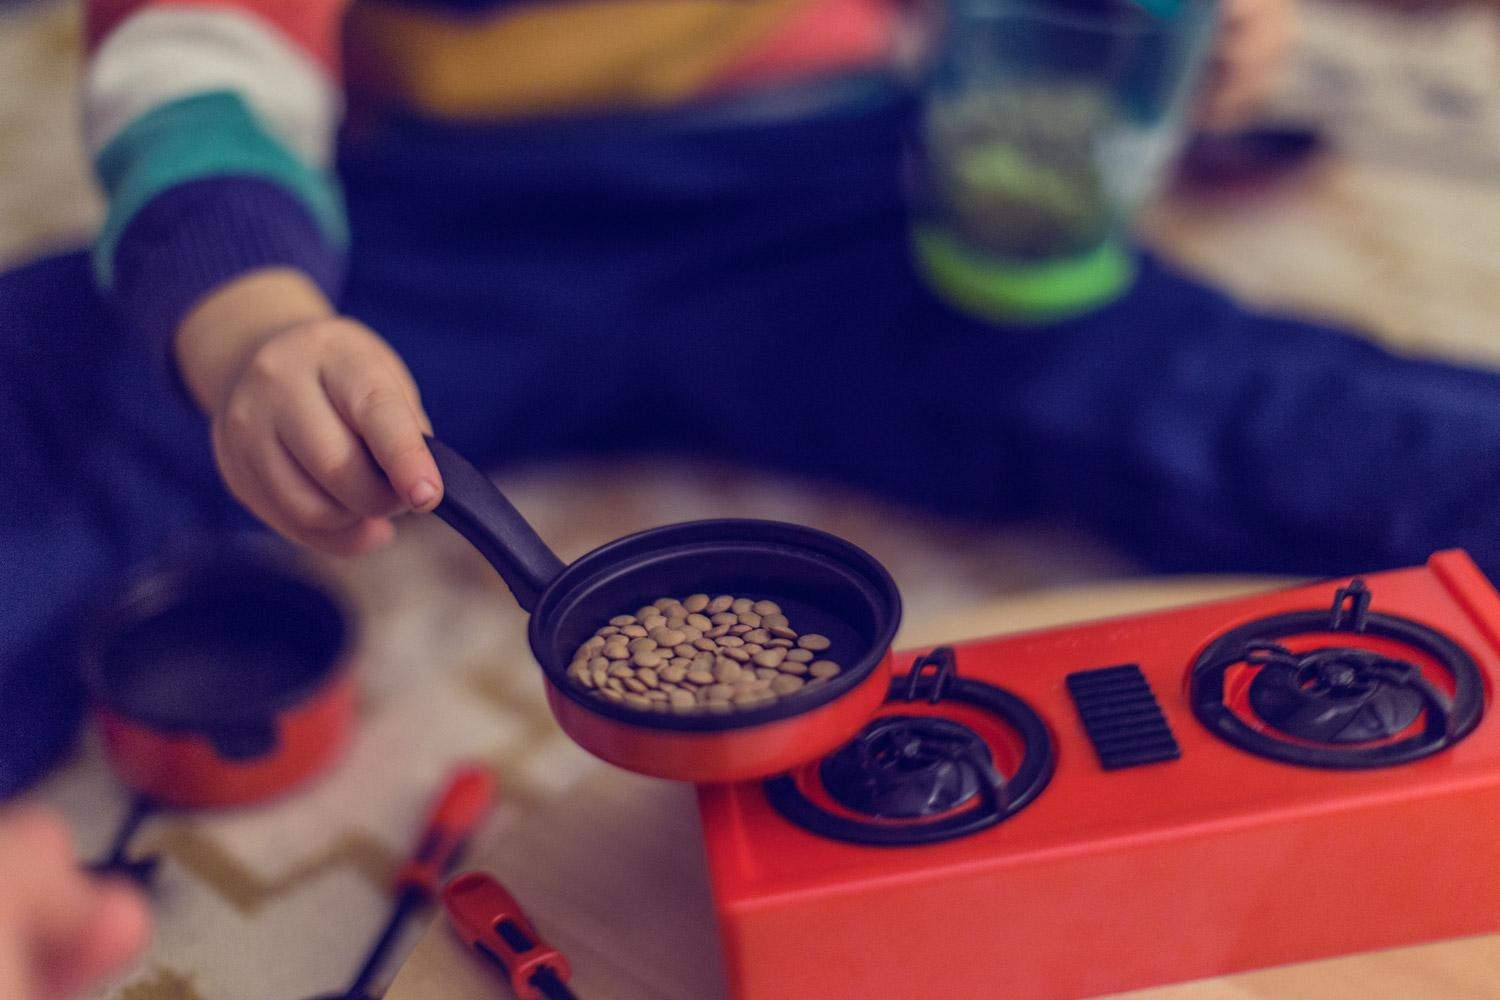 Small child's hand holding a toy pot filled with lentils